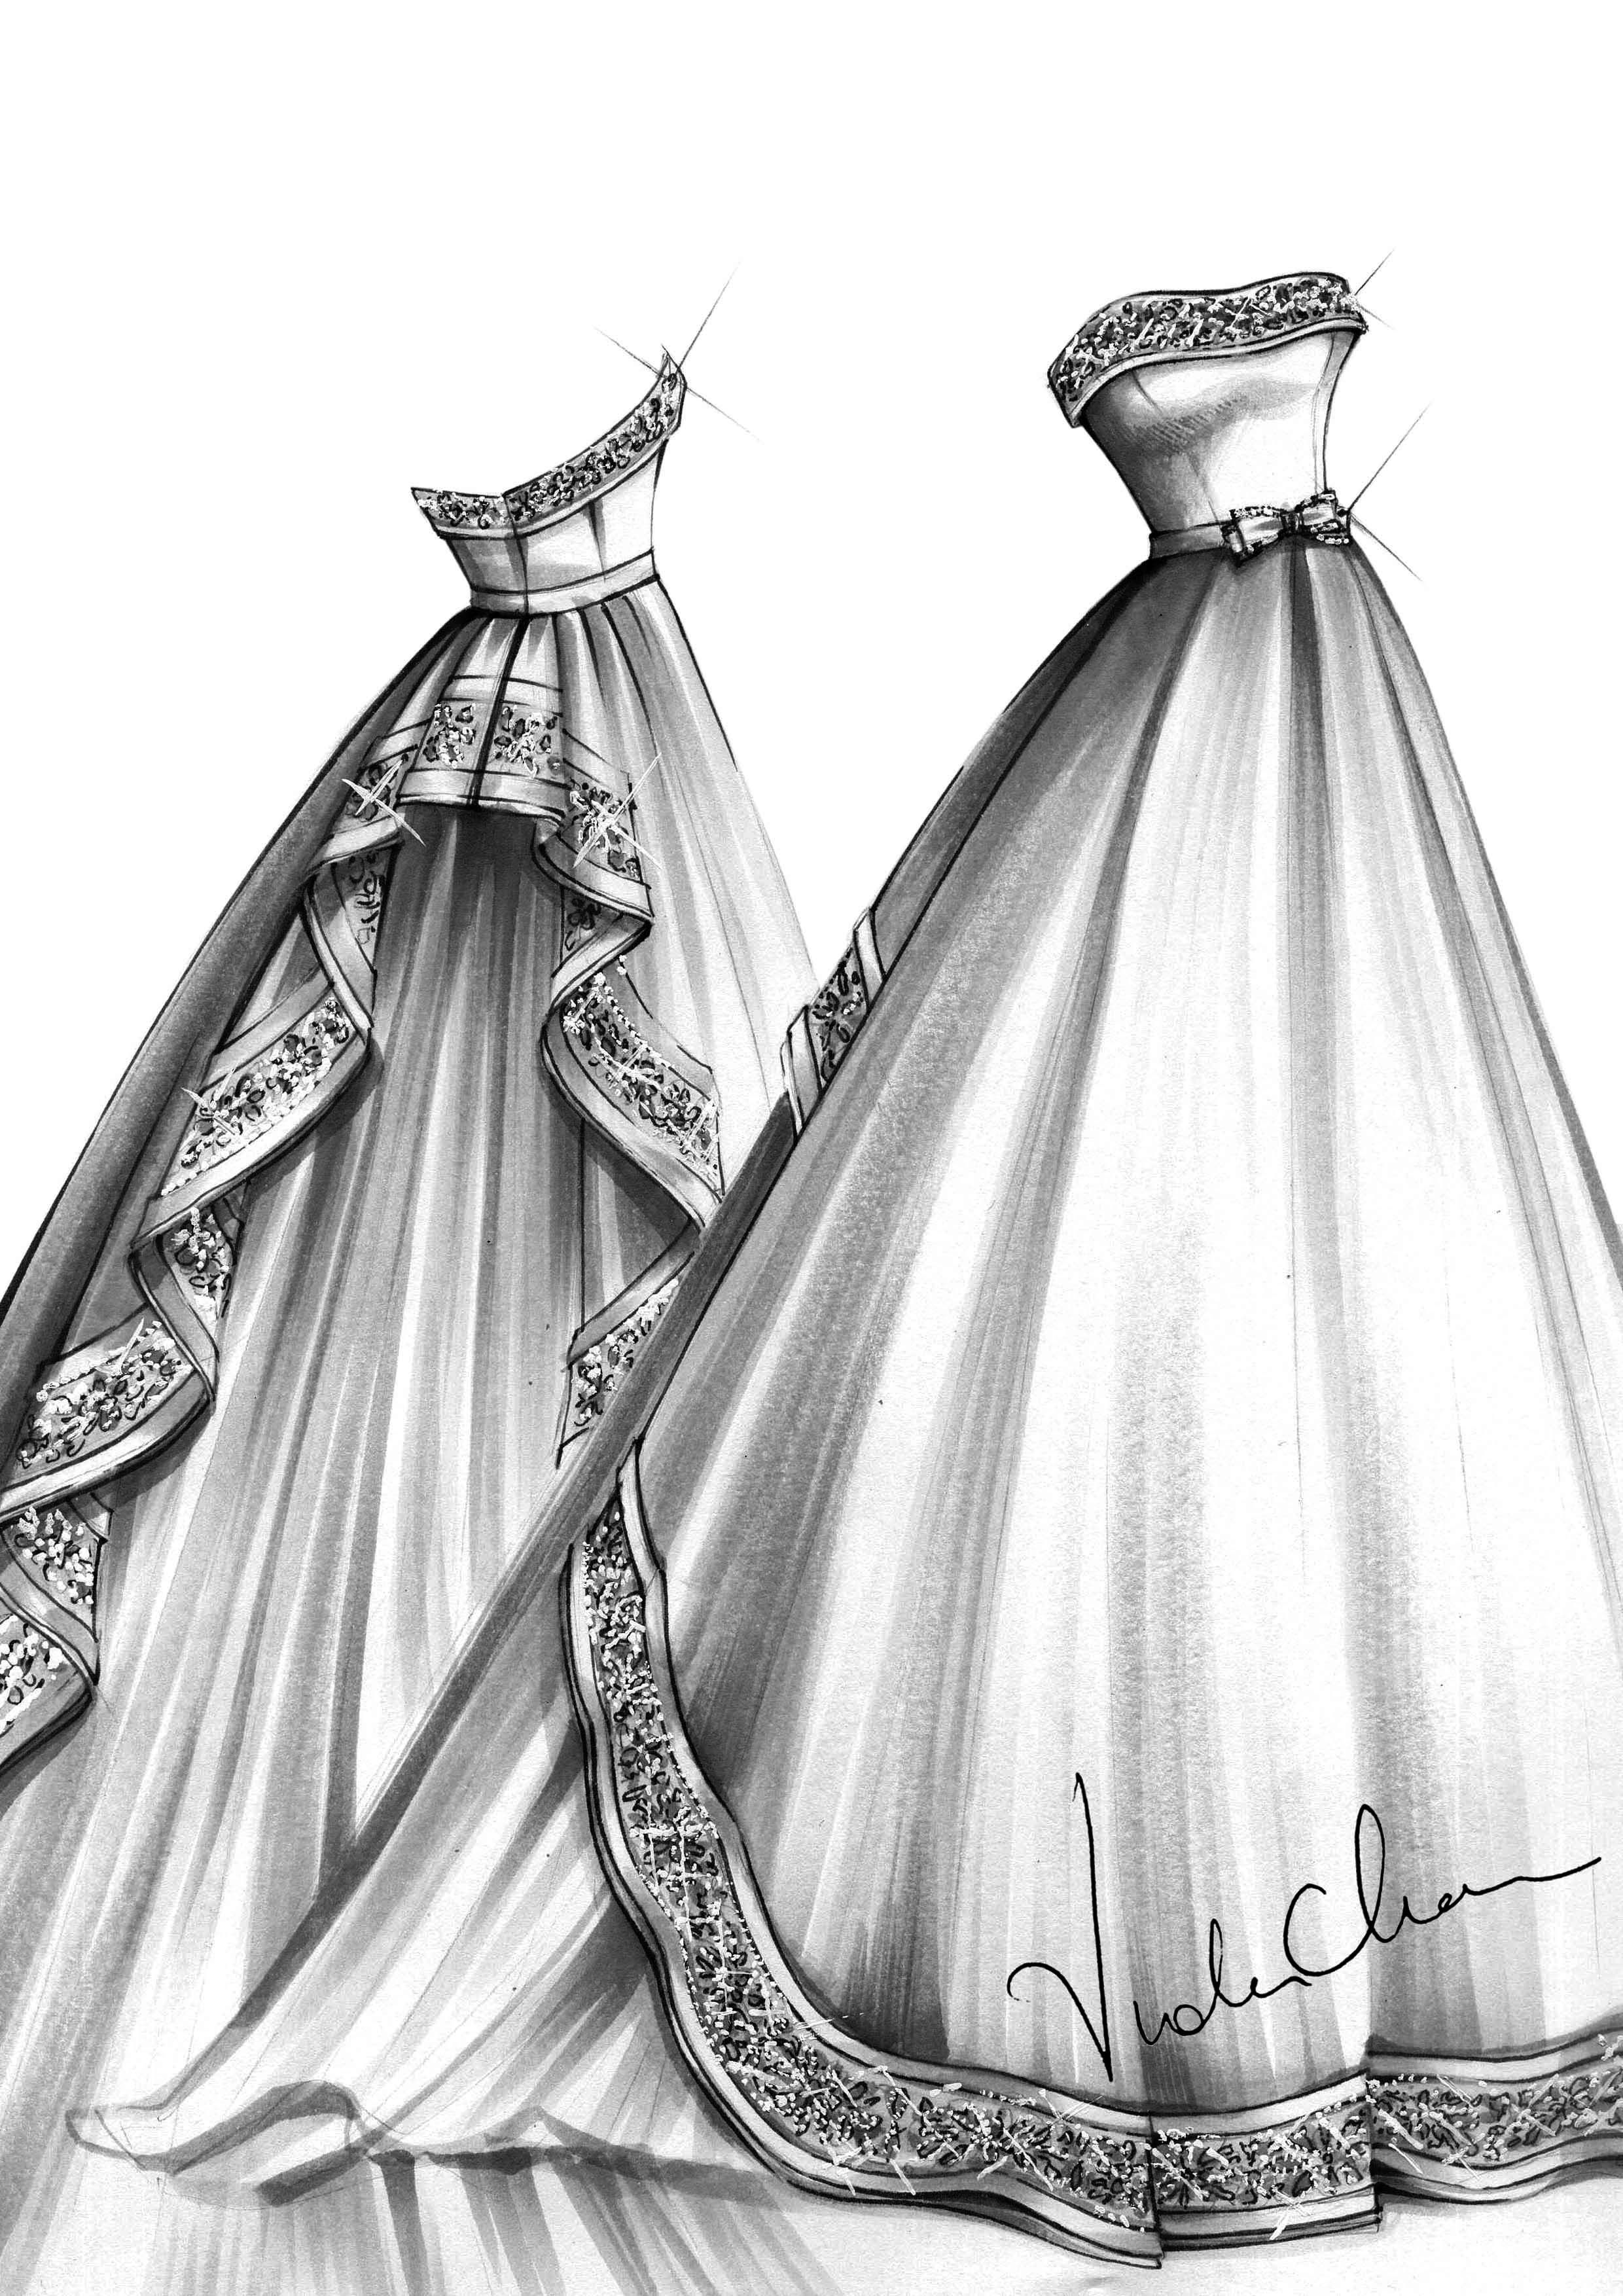 Pin By Lisa Tanner On Viola Chan Sketches Fashion Illustration Dresses Fashion Illustration Sketches Dresses Fashion Drawing Dresses